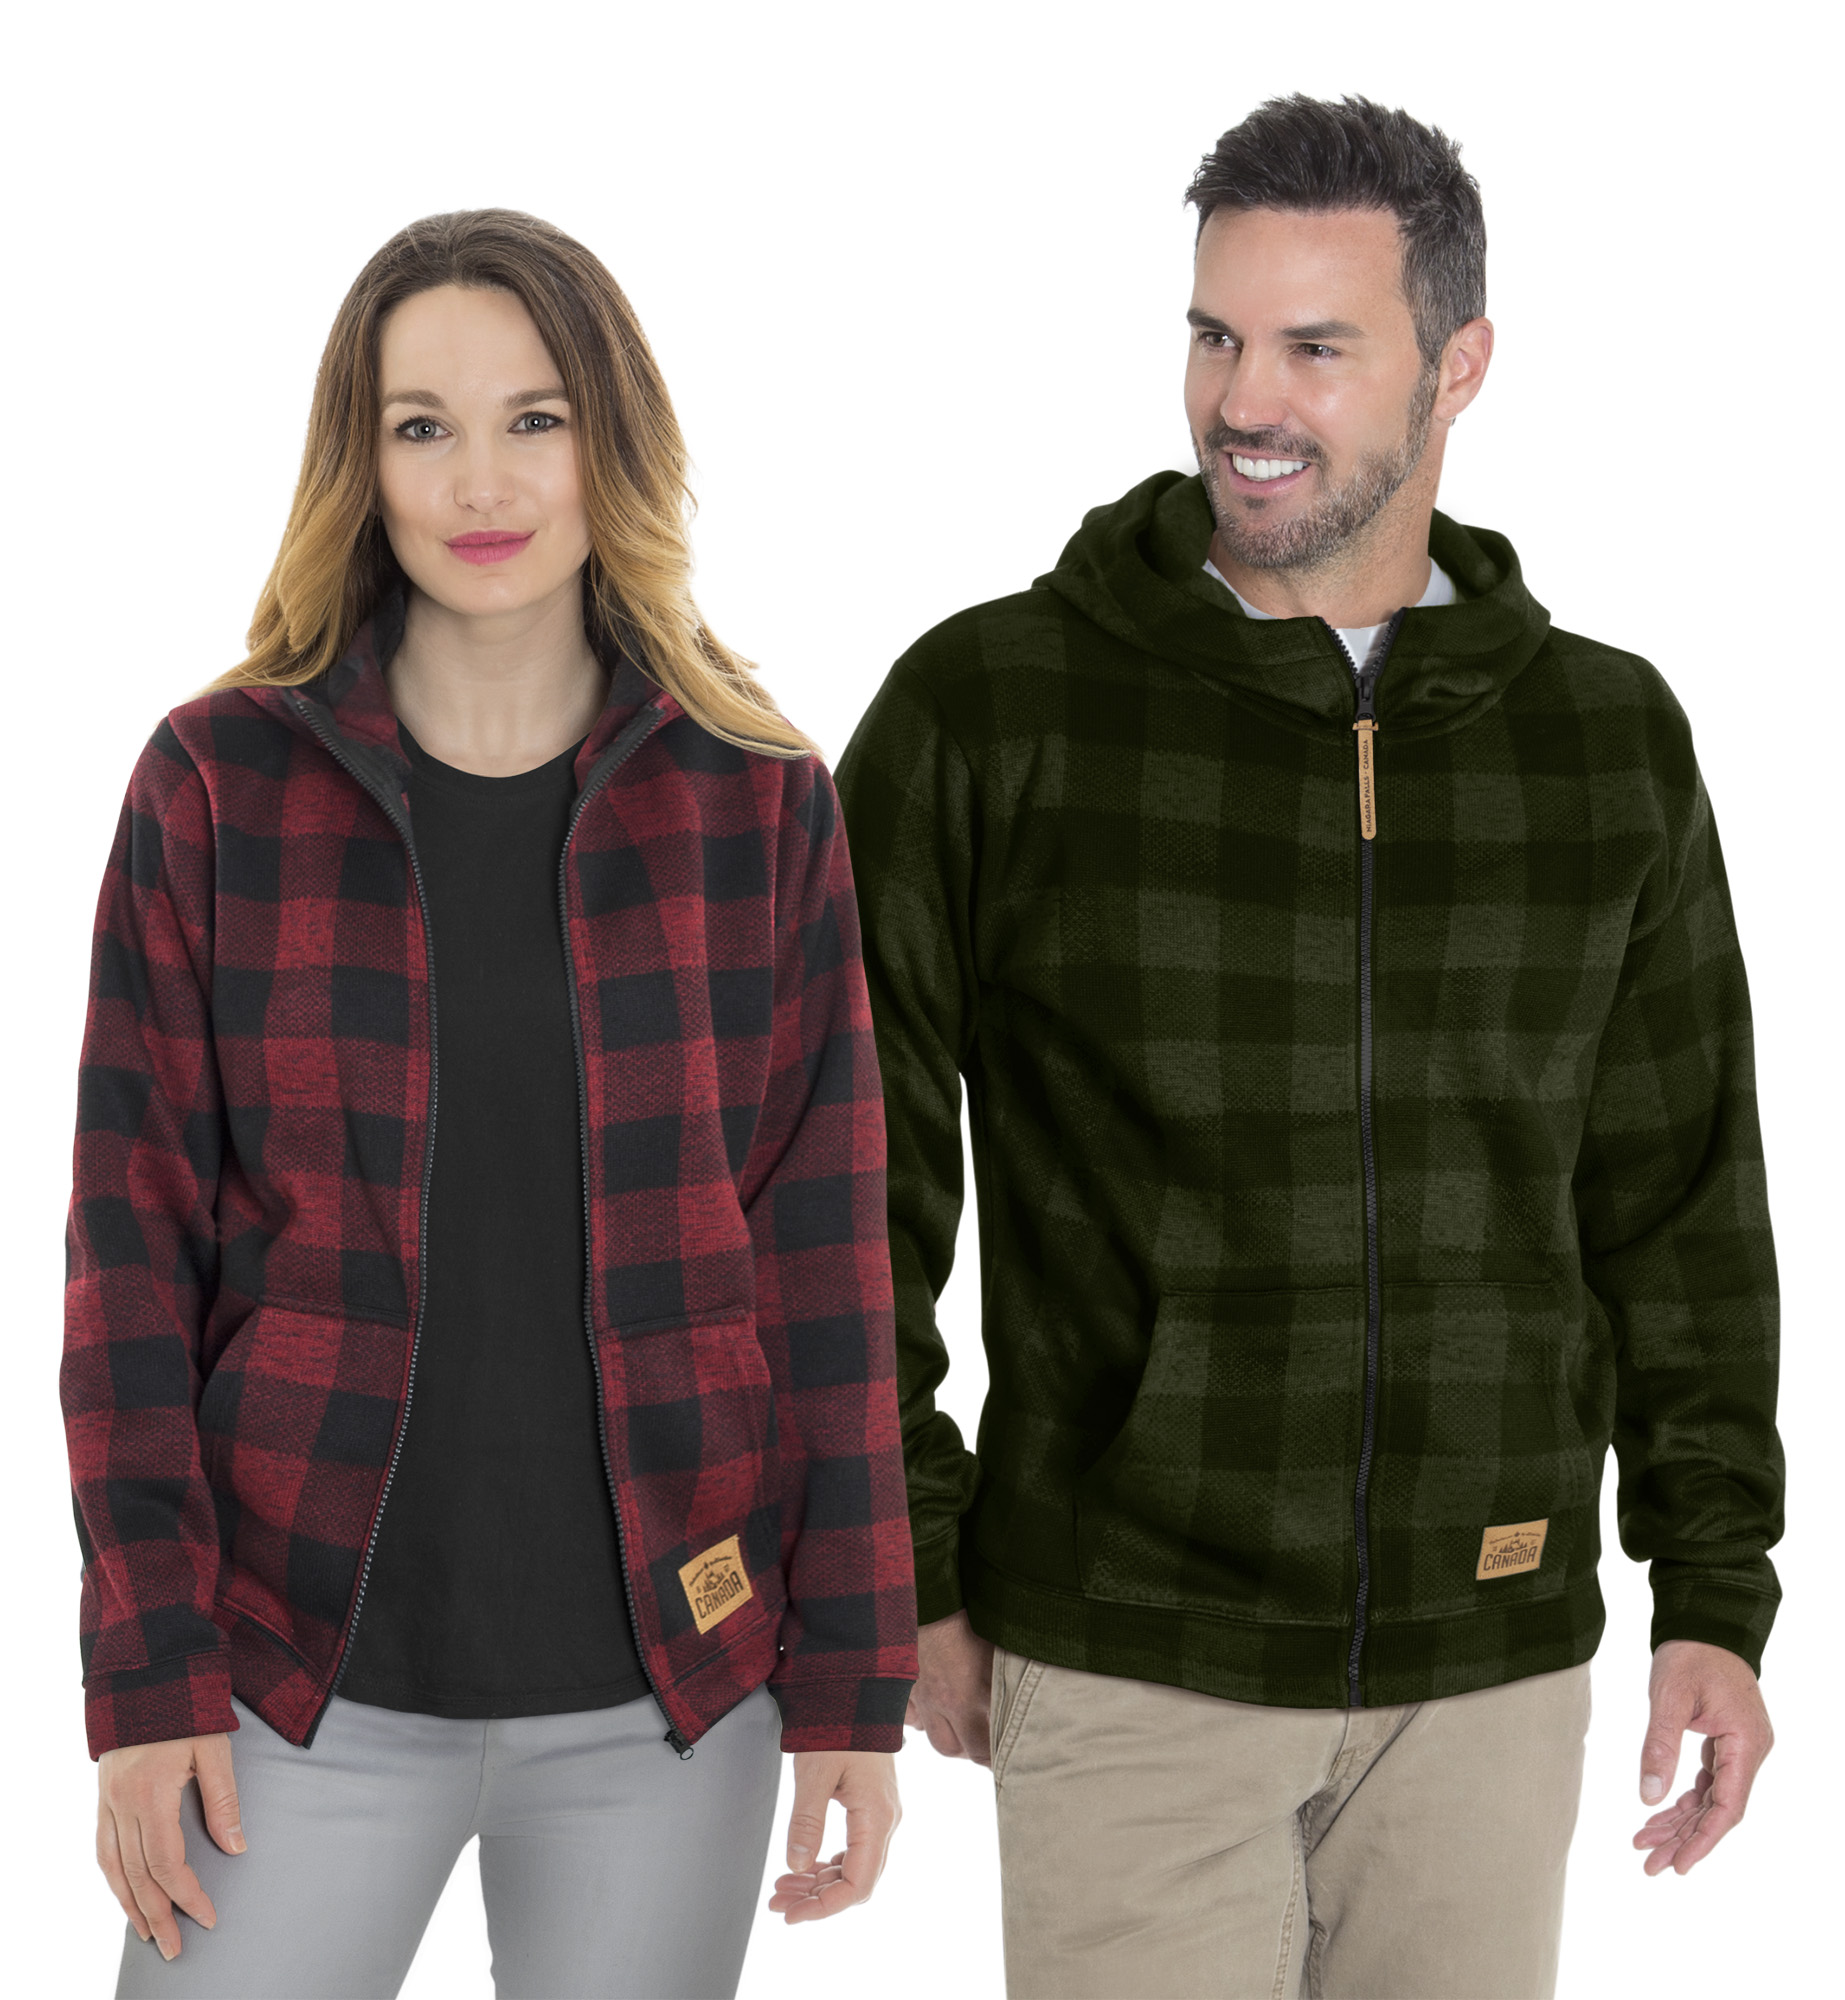 125 - Unisex plaid hooded full zip jacket